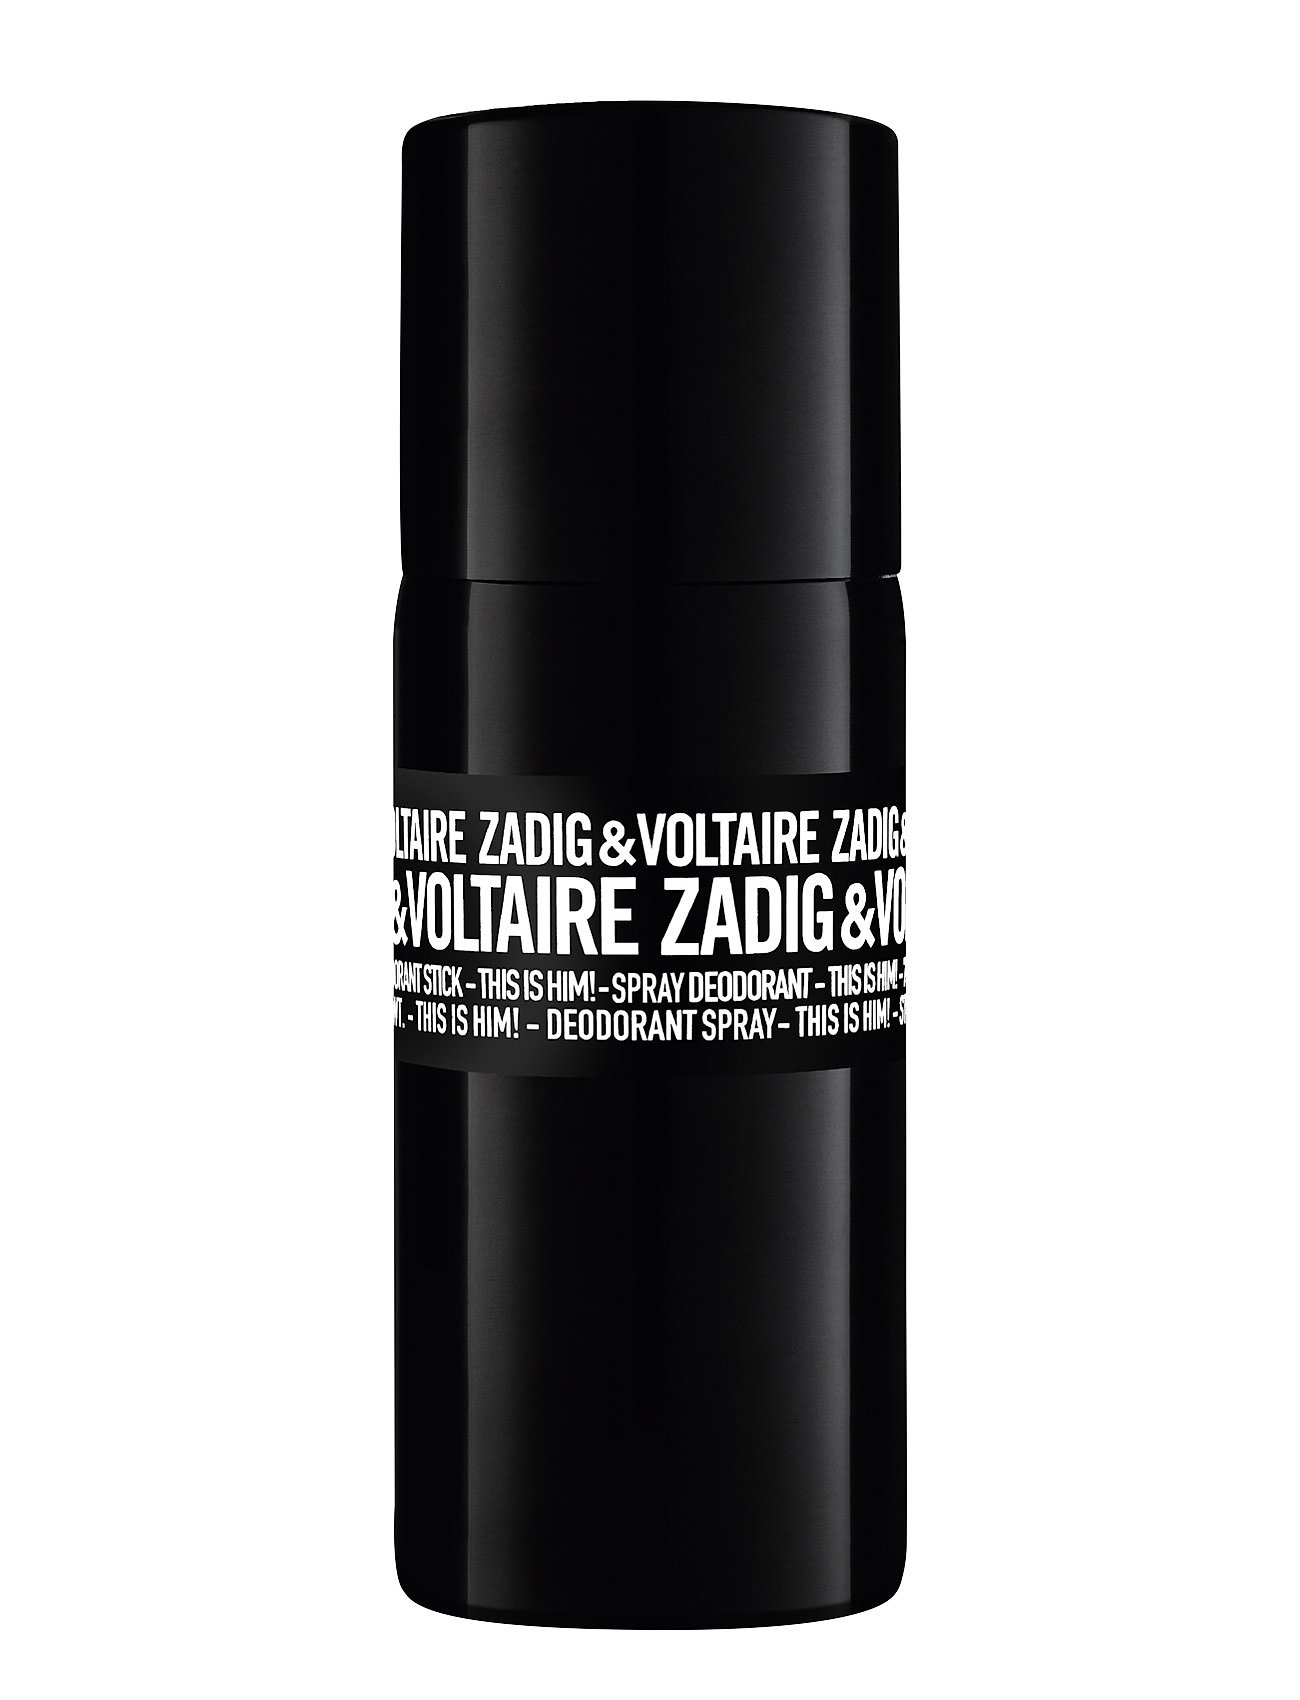 zadig & voltaire fragrance – Zadig & voltaire this is him! deodo på boozt.com dk